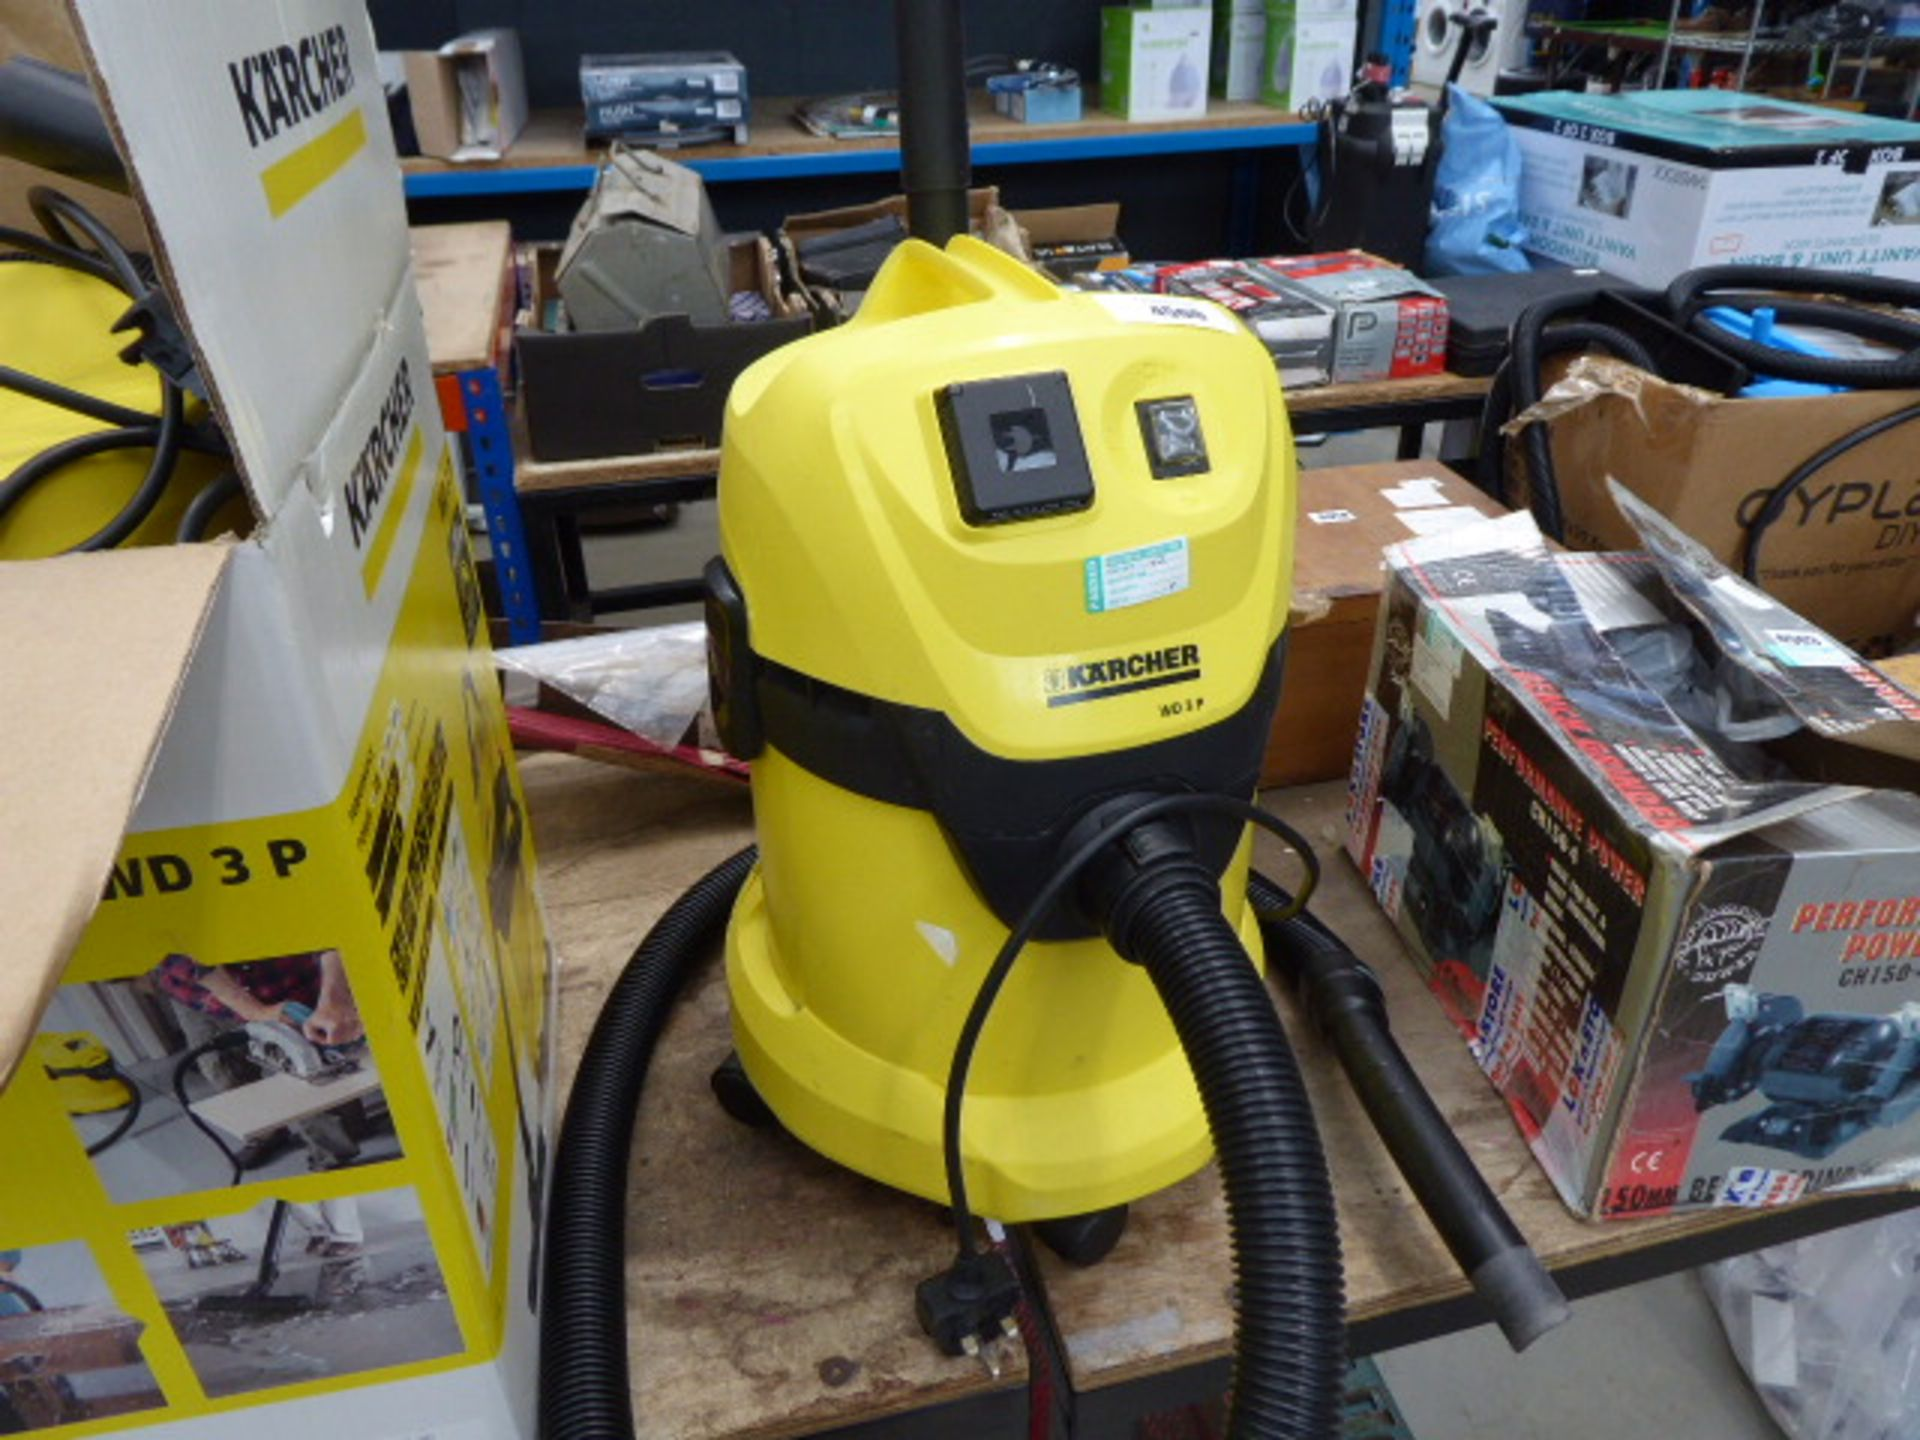 Lot 4500 - Karcher unboxed vacuum cleaner